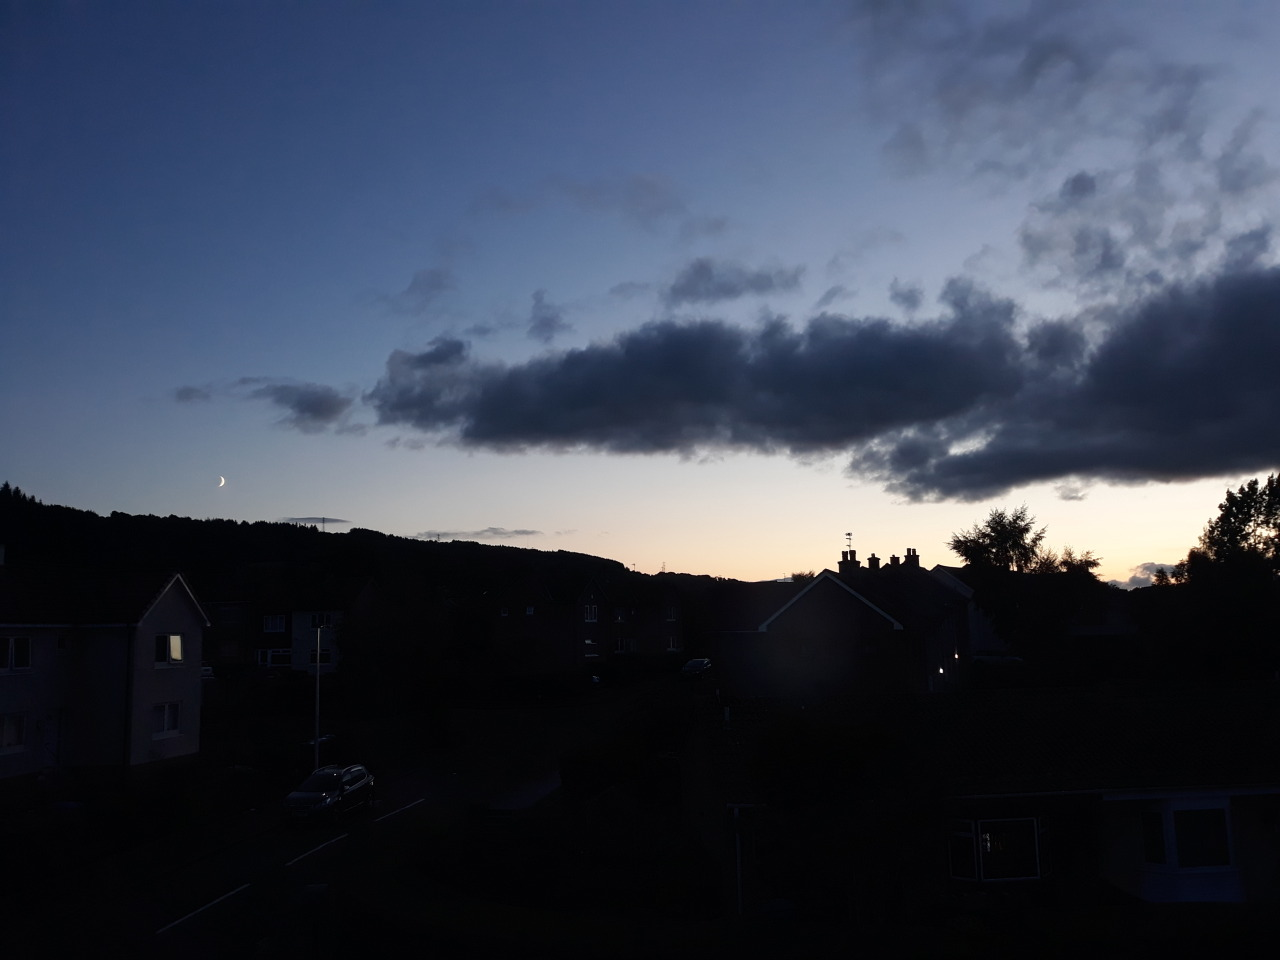 8.01pm, 09/21 #sky#clouds#weather#sunset#moon#crescent moon #photographers on tumblr #phone camera#unedited